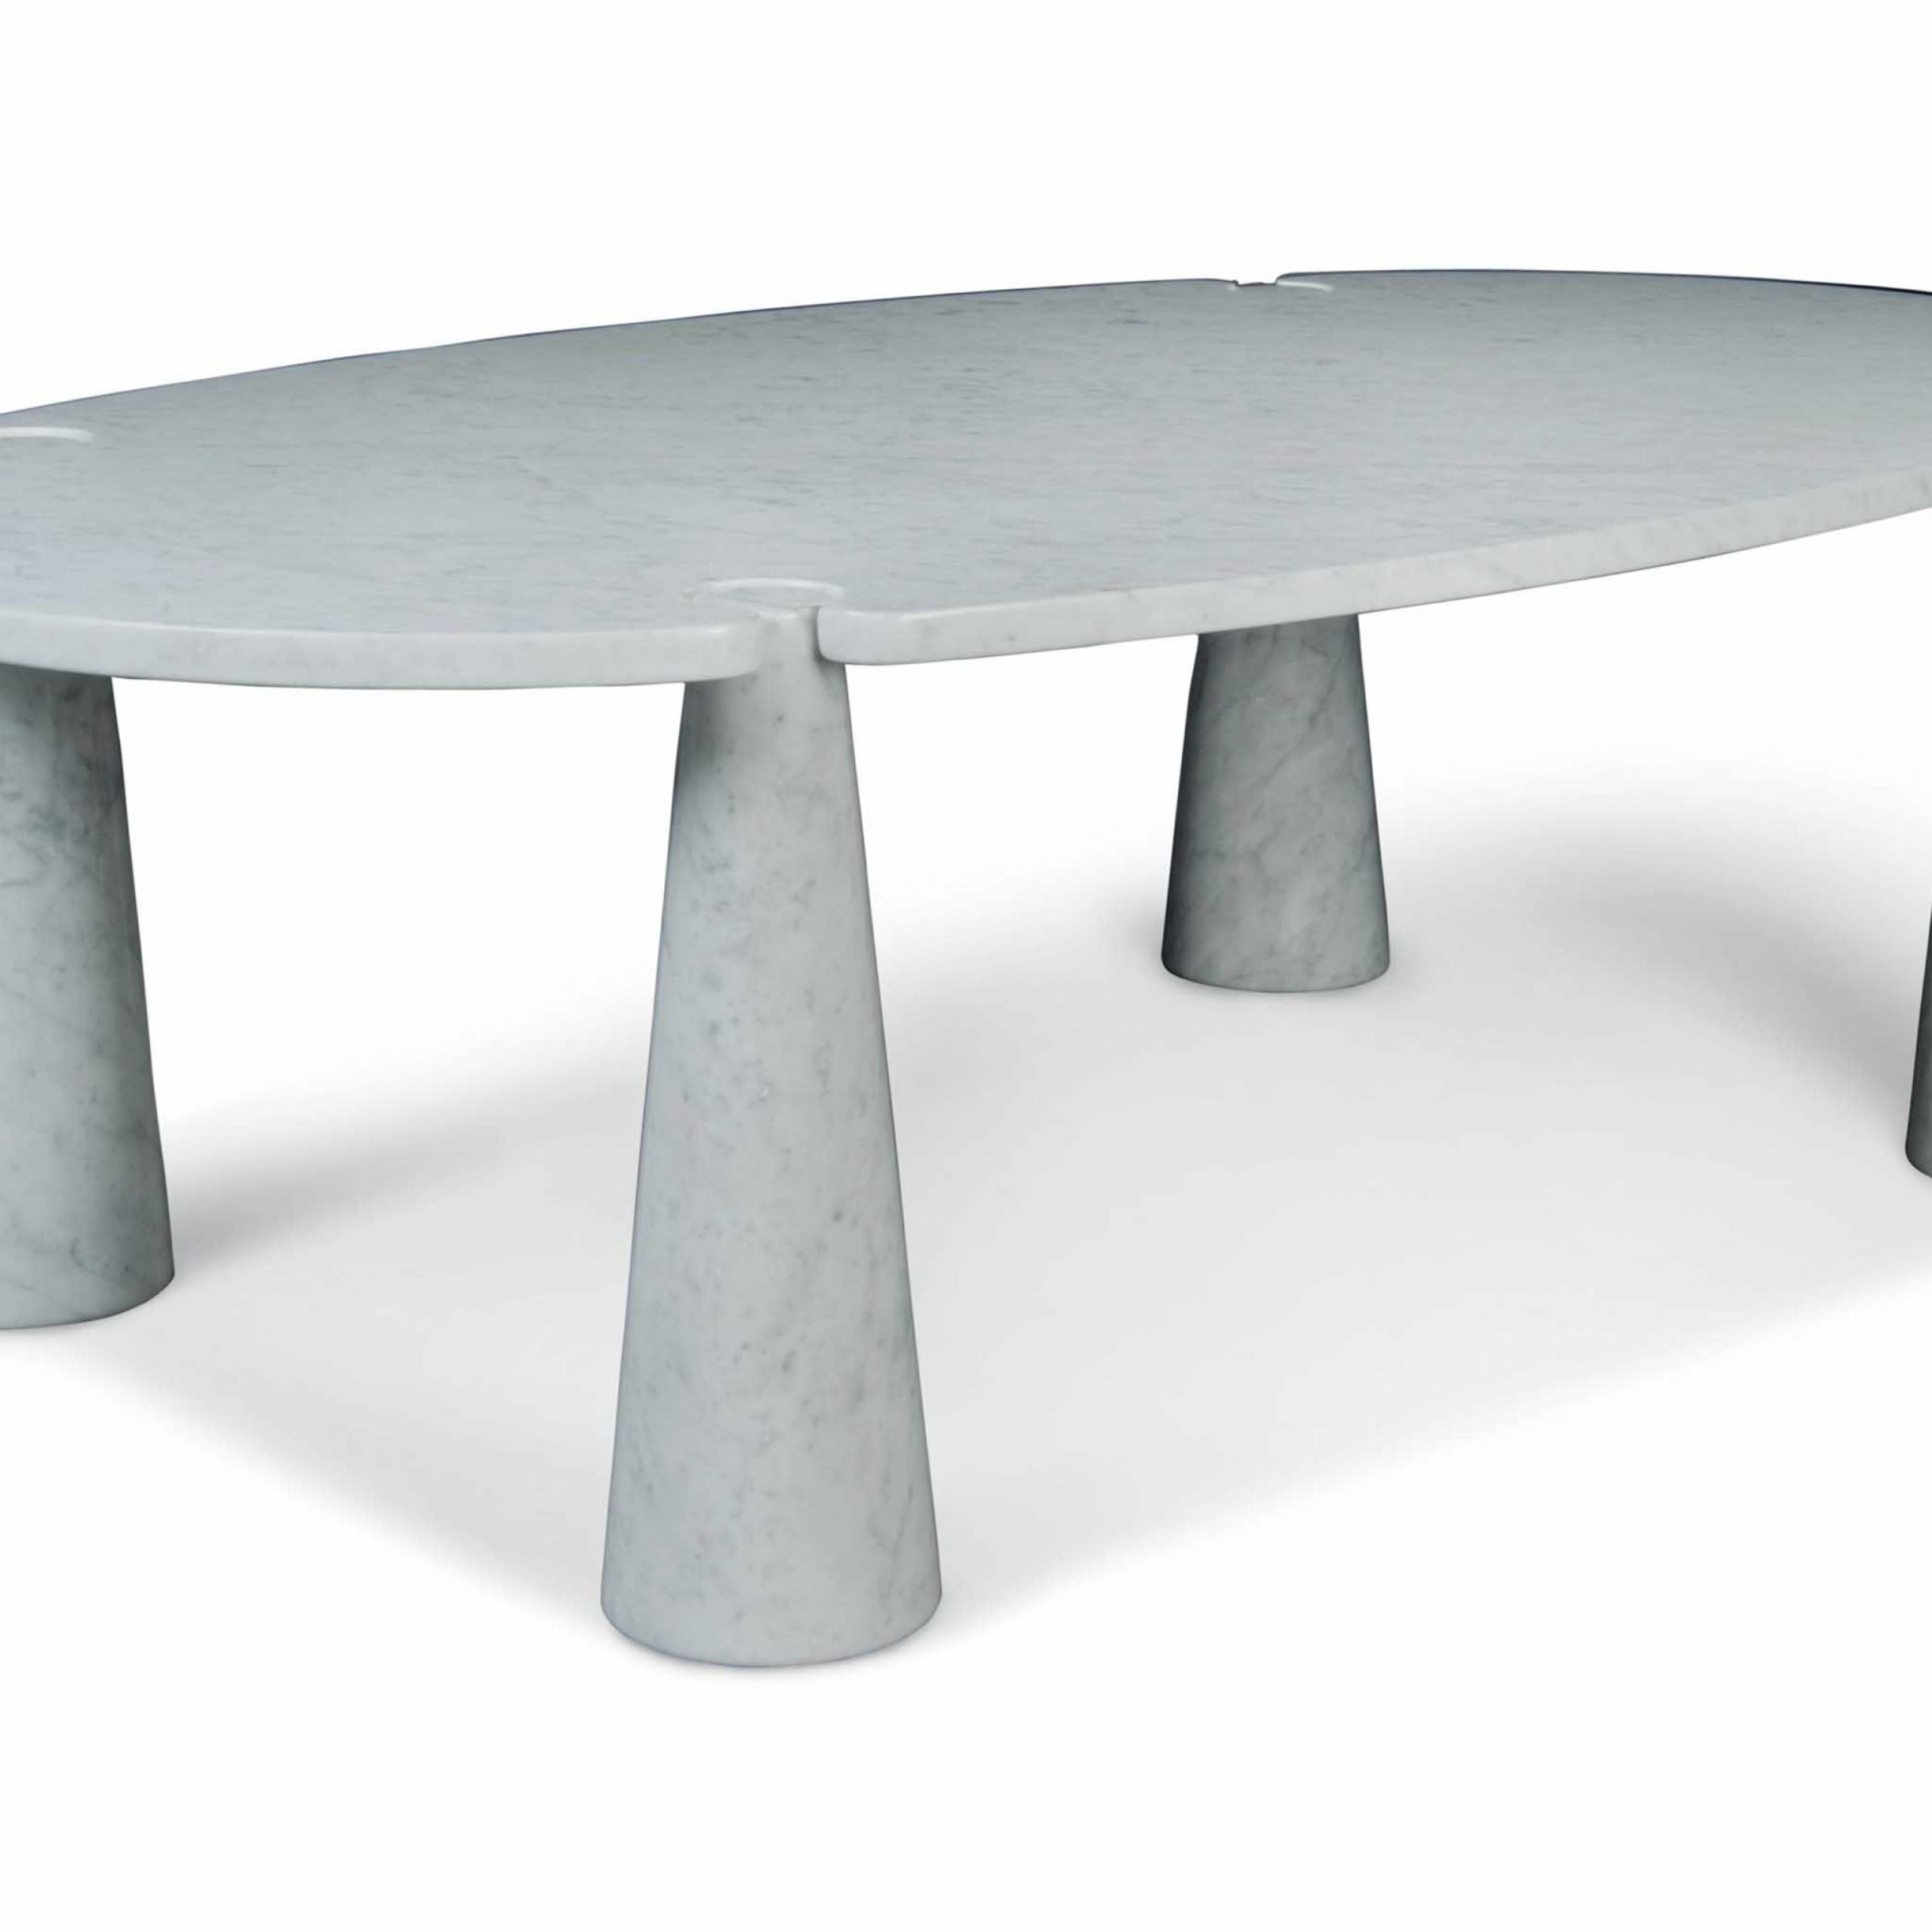 Angelo Mangiarotti (1921 2012) | An 'eros' Dining Table For Most Recent Christie Round Marble Dining Tables (View 5 of 25)